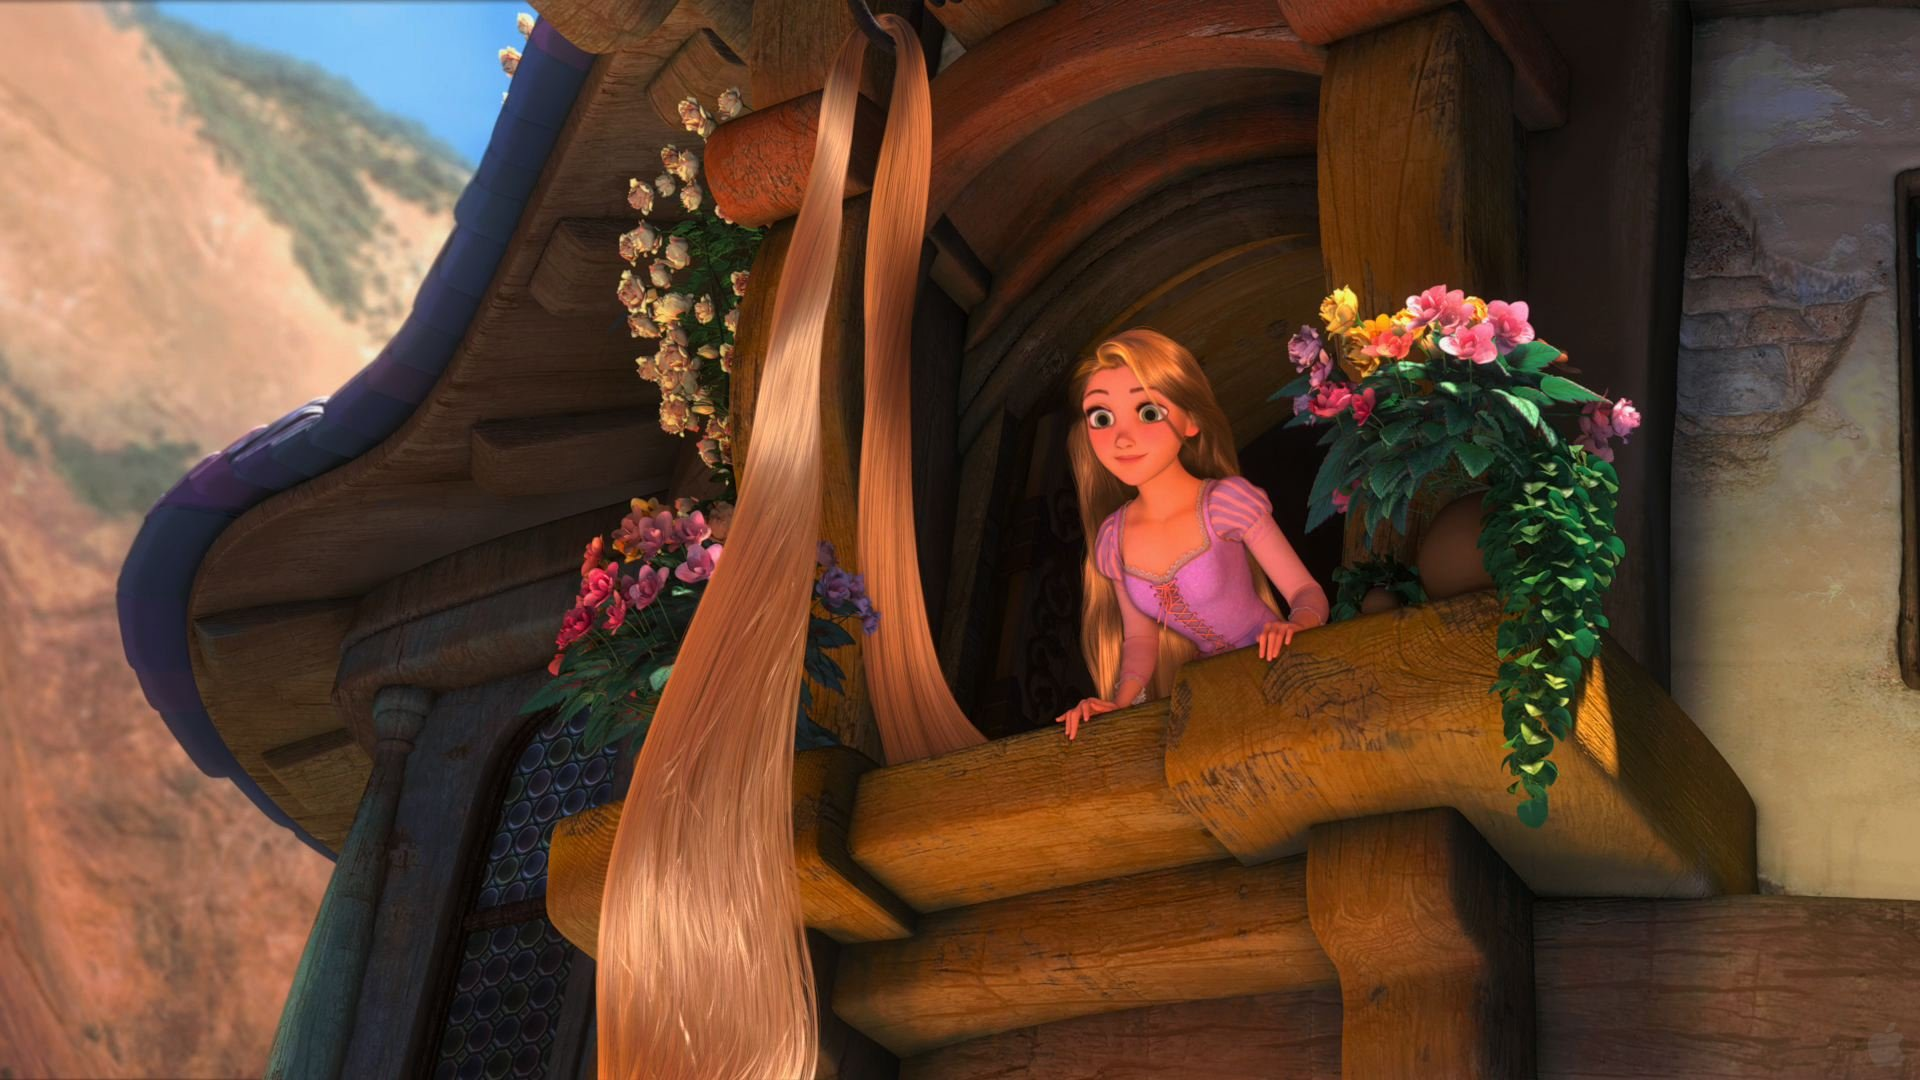 disney-tangled-rapunzel-tower-wallpaper.jpg